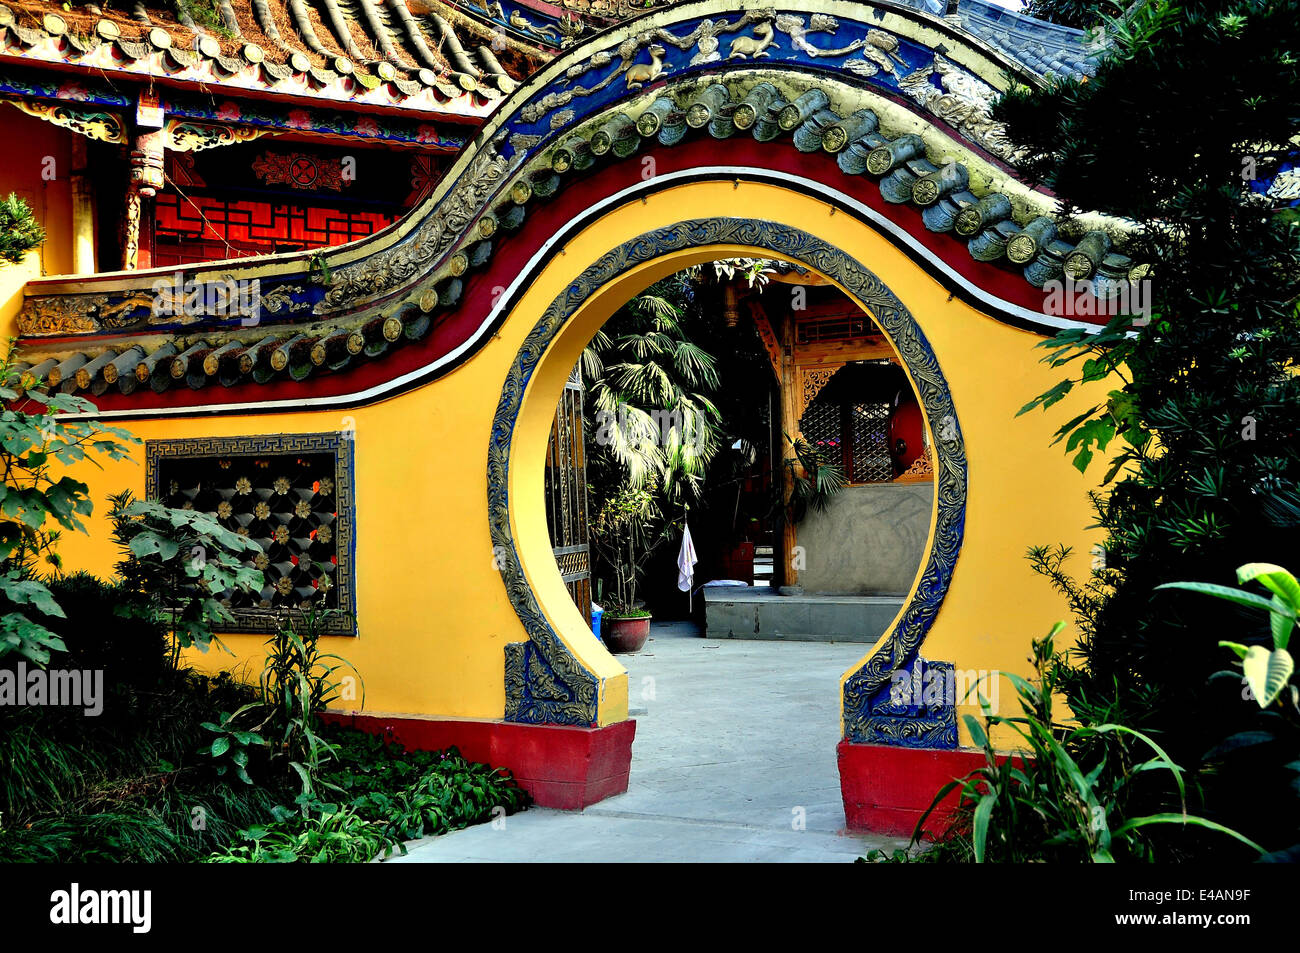 PENGZHOU, CHINA: A moon gate flanked by gardens leads into an inner courtyard at the Ci Ji Buddhist Temple - Stock Image